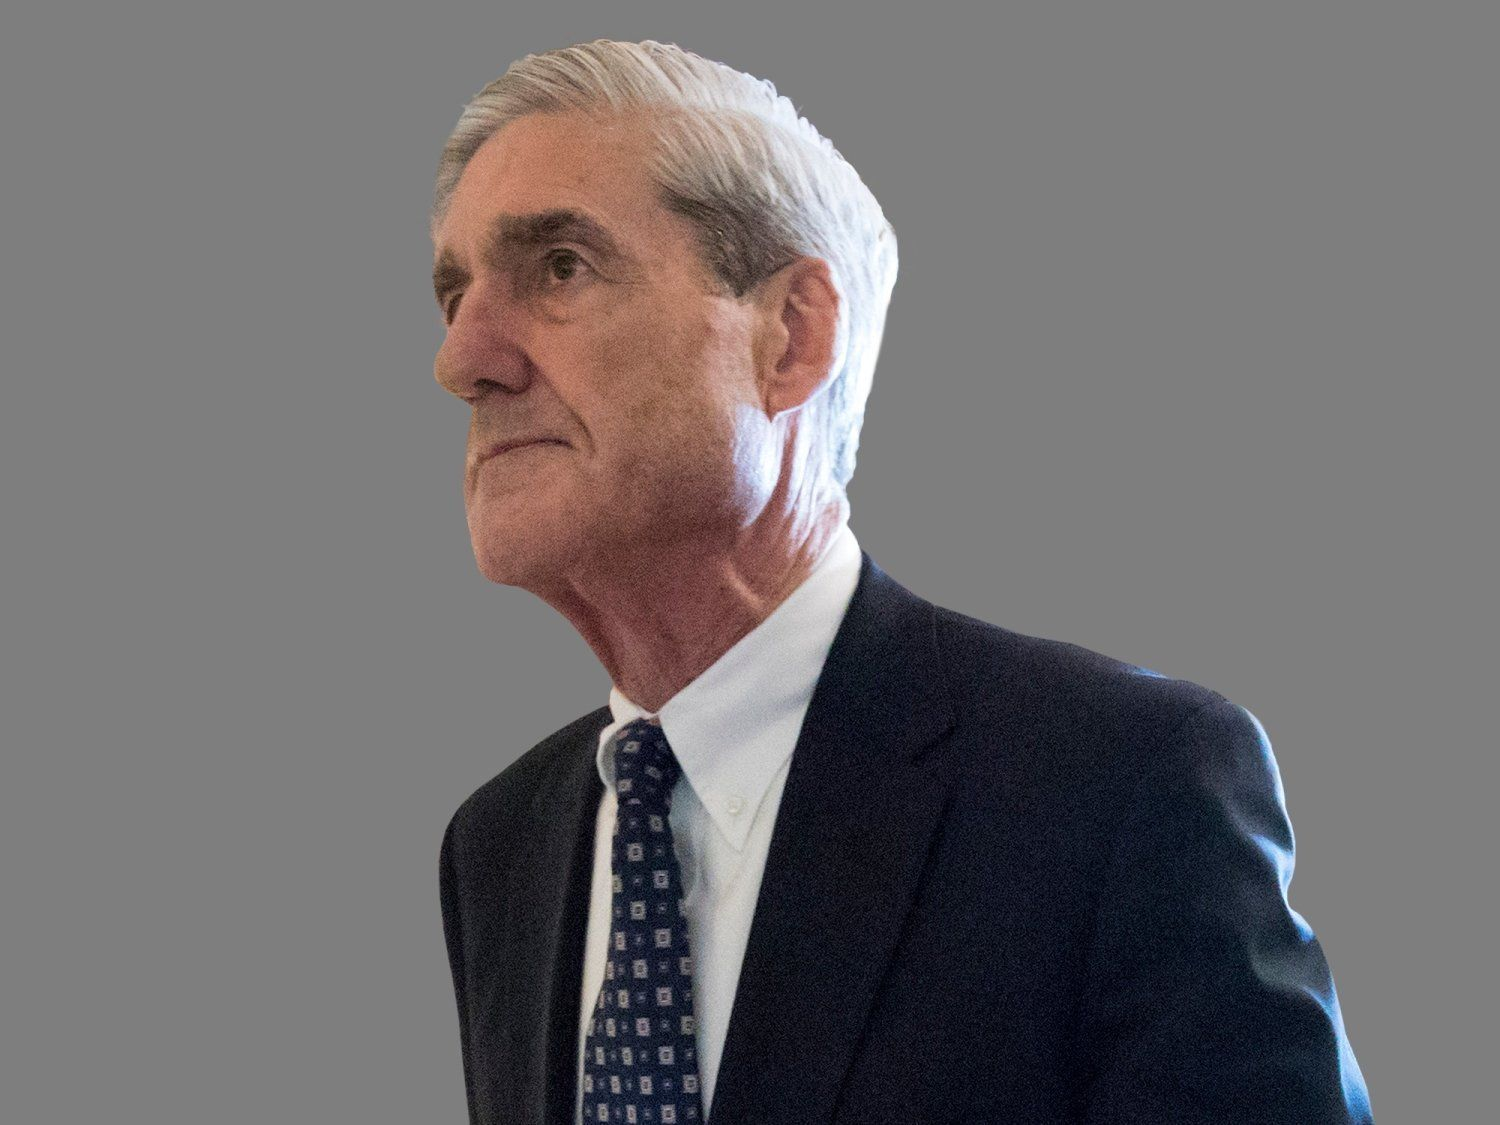 Robert Mueller headshot, former FBI director, graphic element on gray